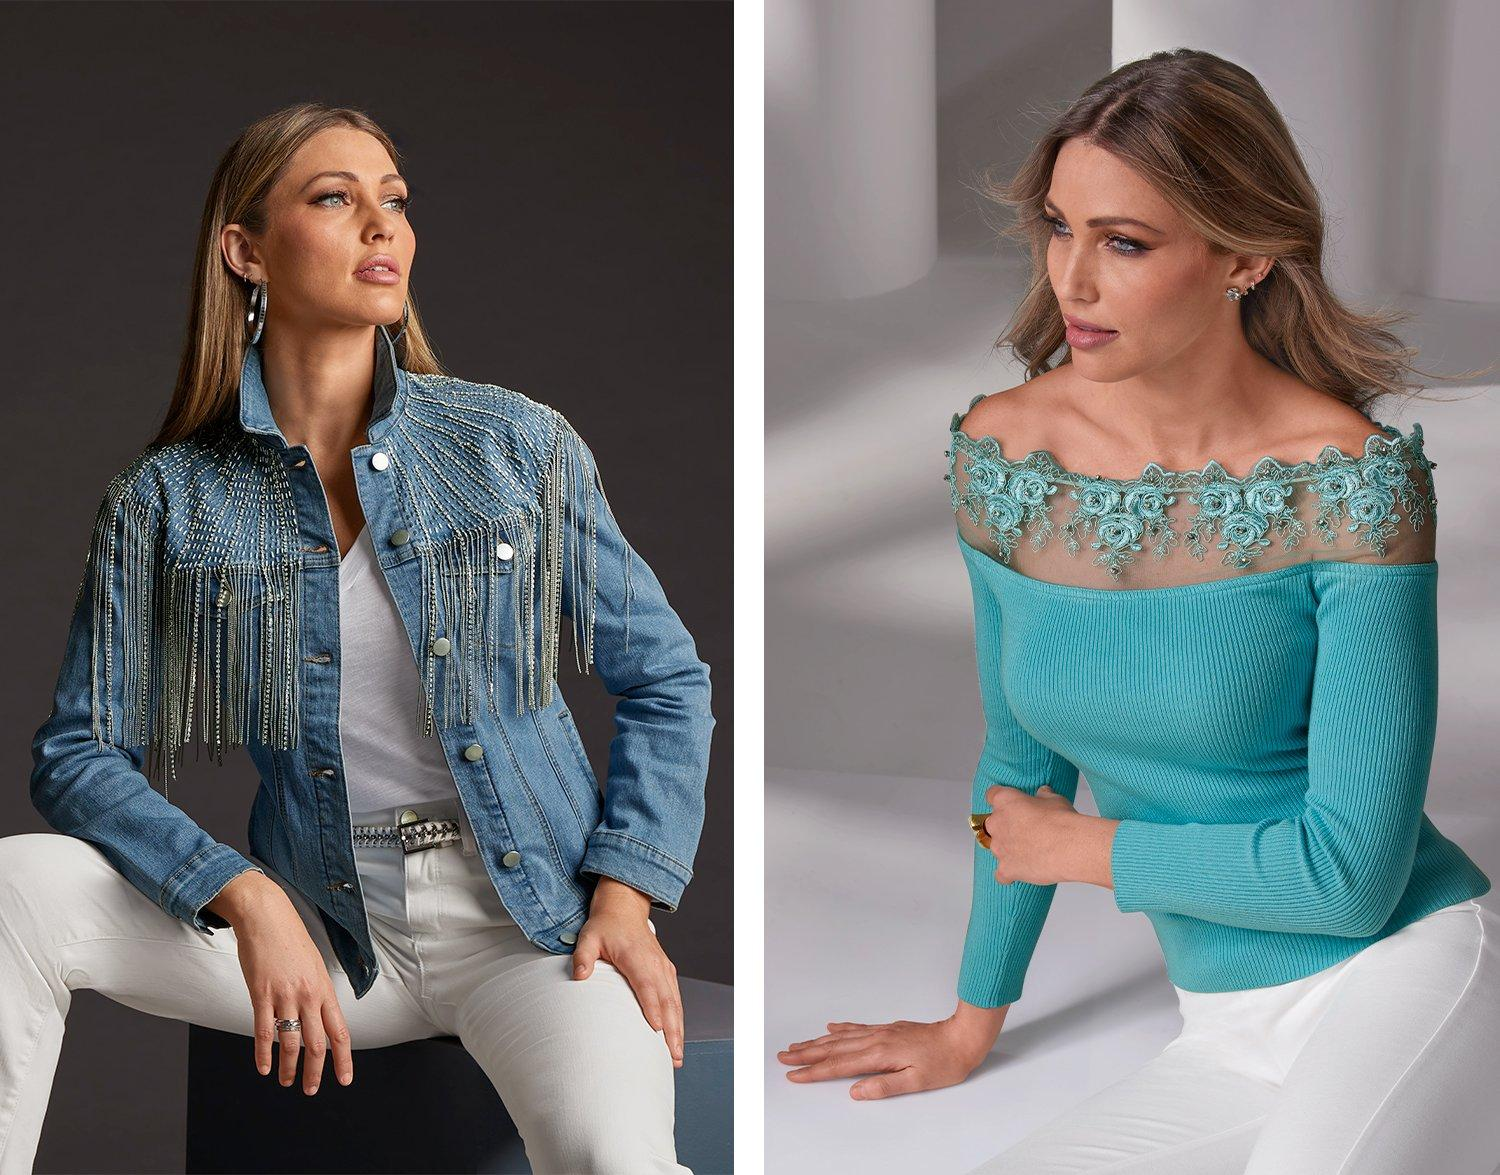 left model wearing a denim jacket embellished with rhinestone fringe, white v-neck tee, white jeans, and silver hoop earrings. right model wearing a blue illusion lace off-the-shoulder sweater and white pants.